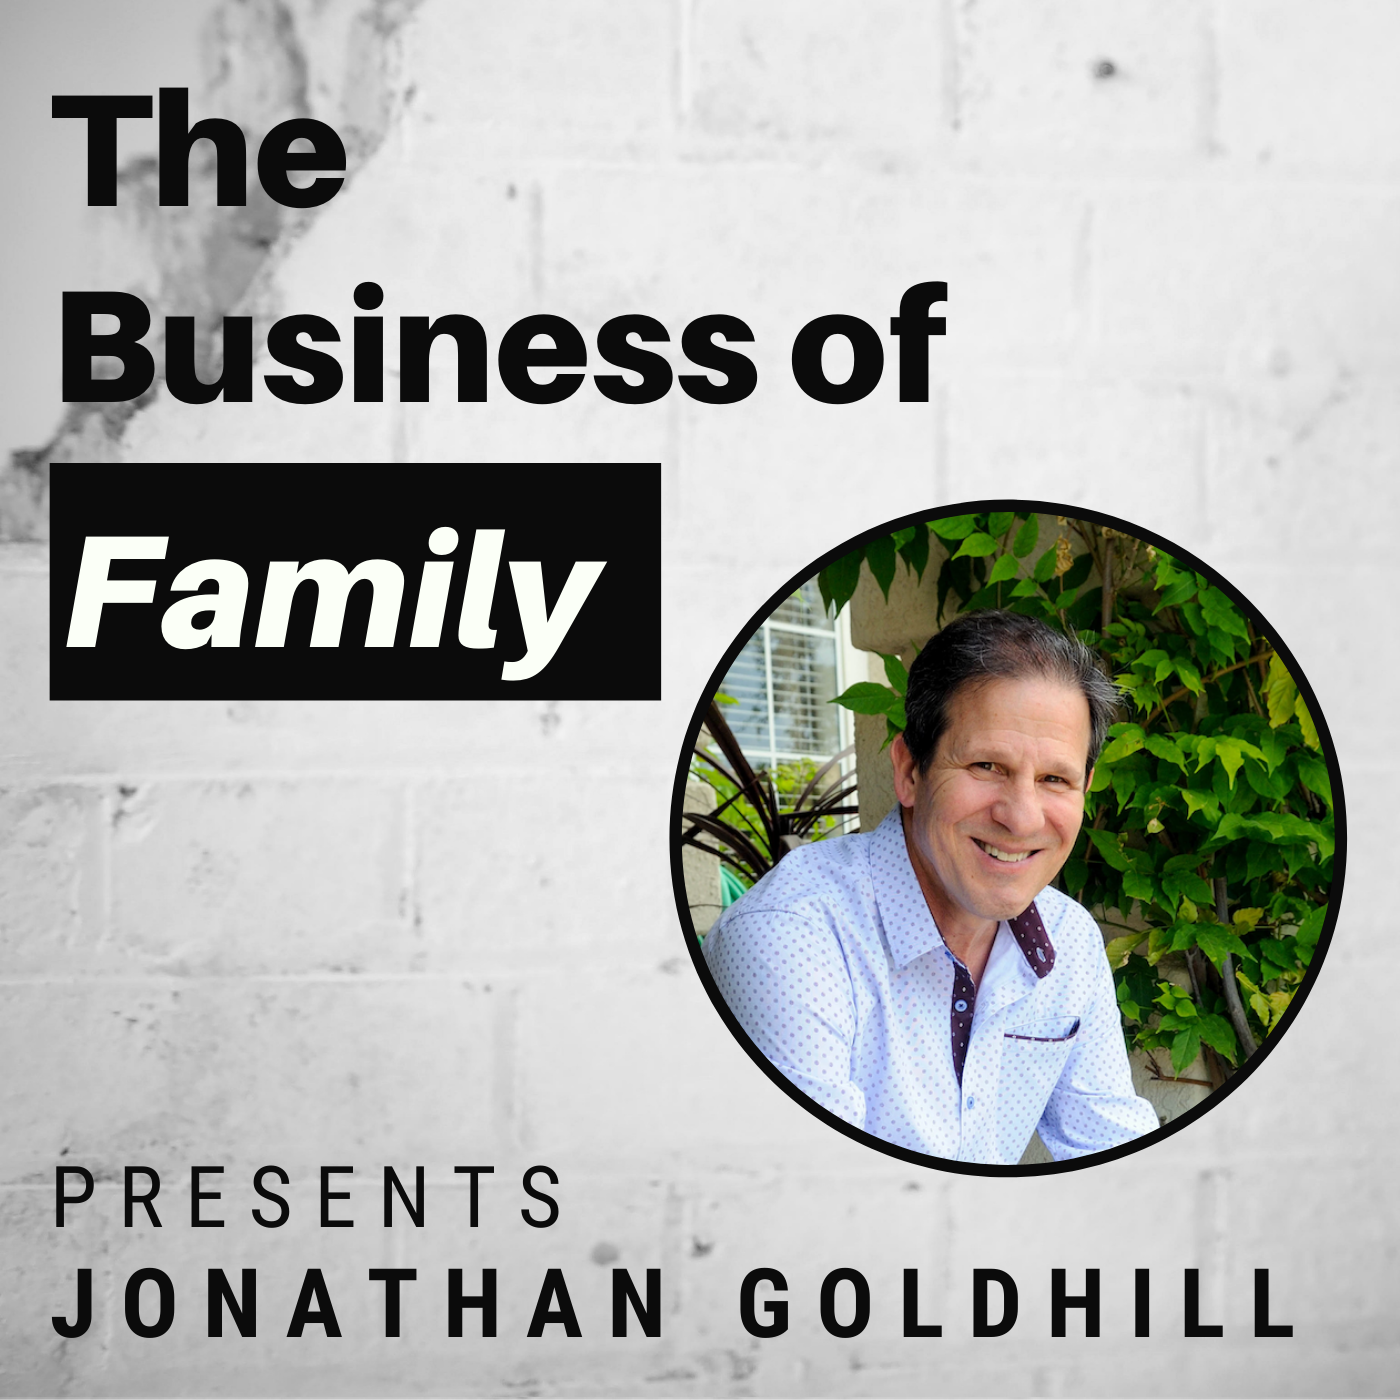 Jonathan is very candid about his experience of inheriting family wealth.